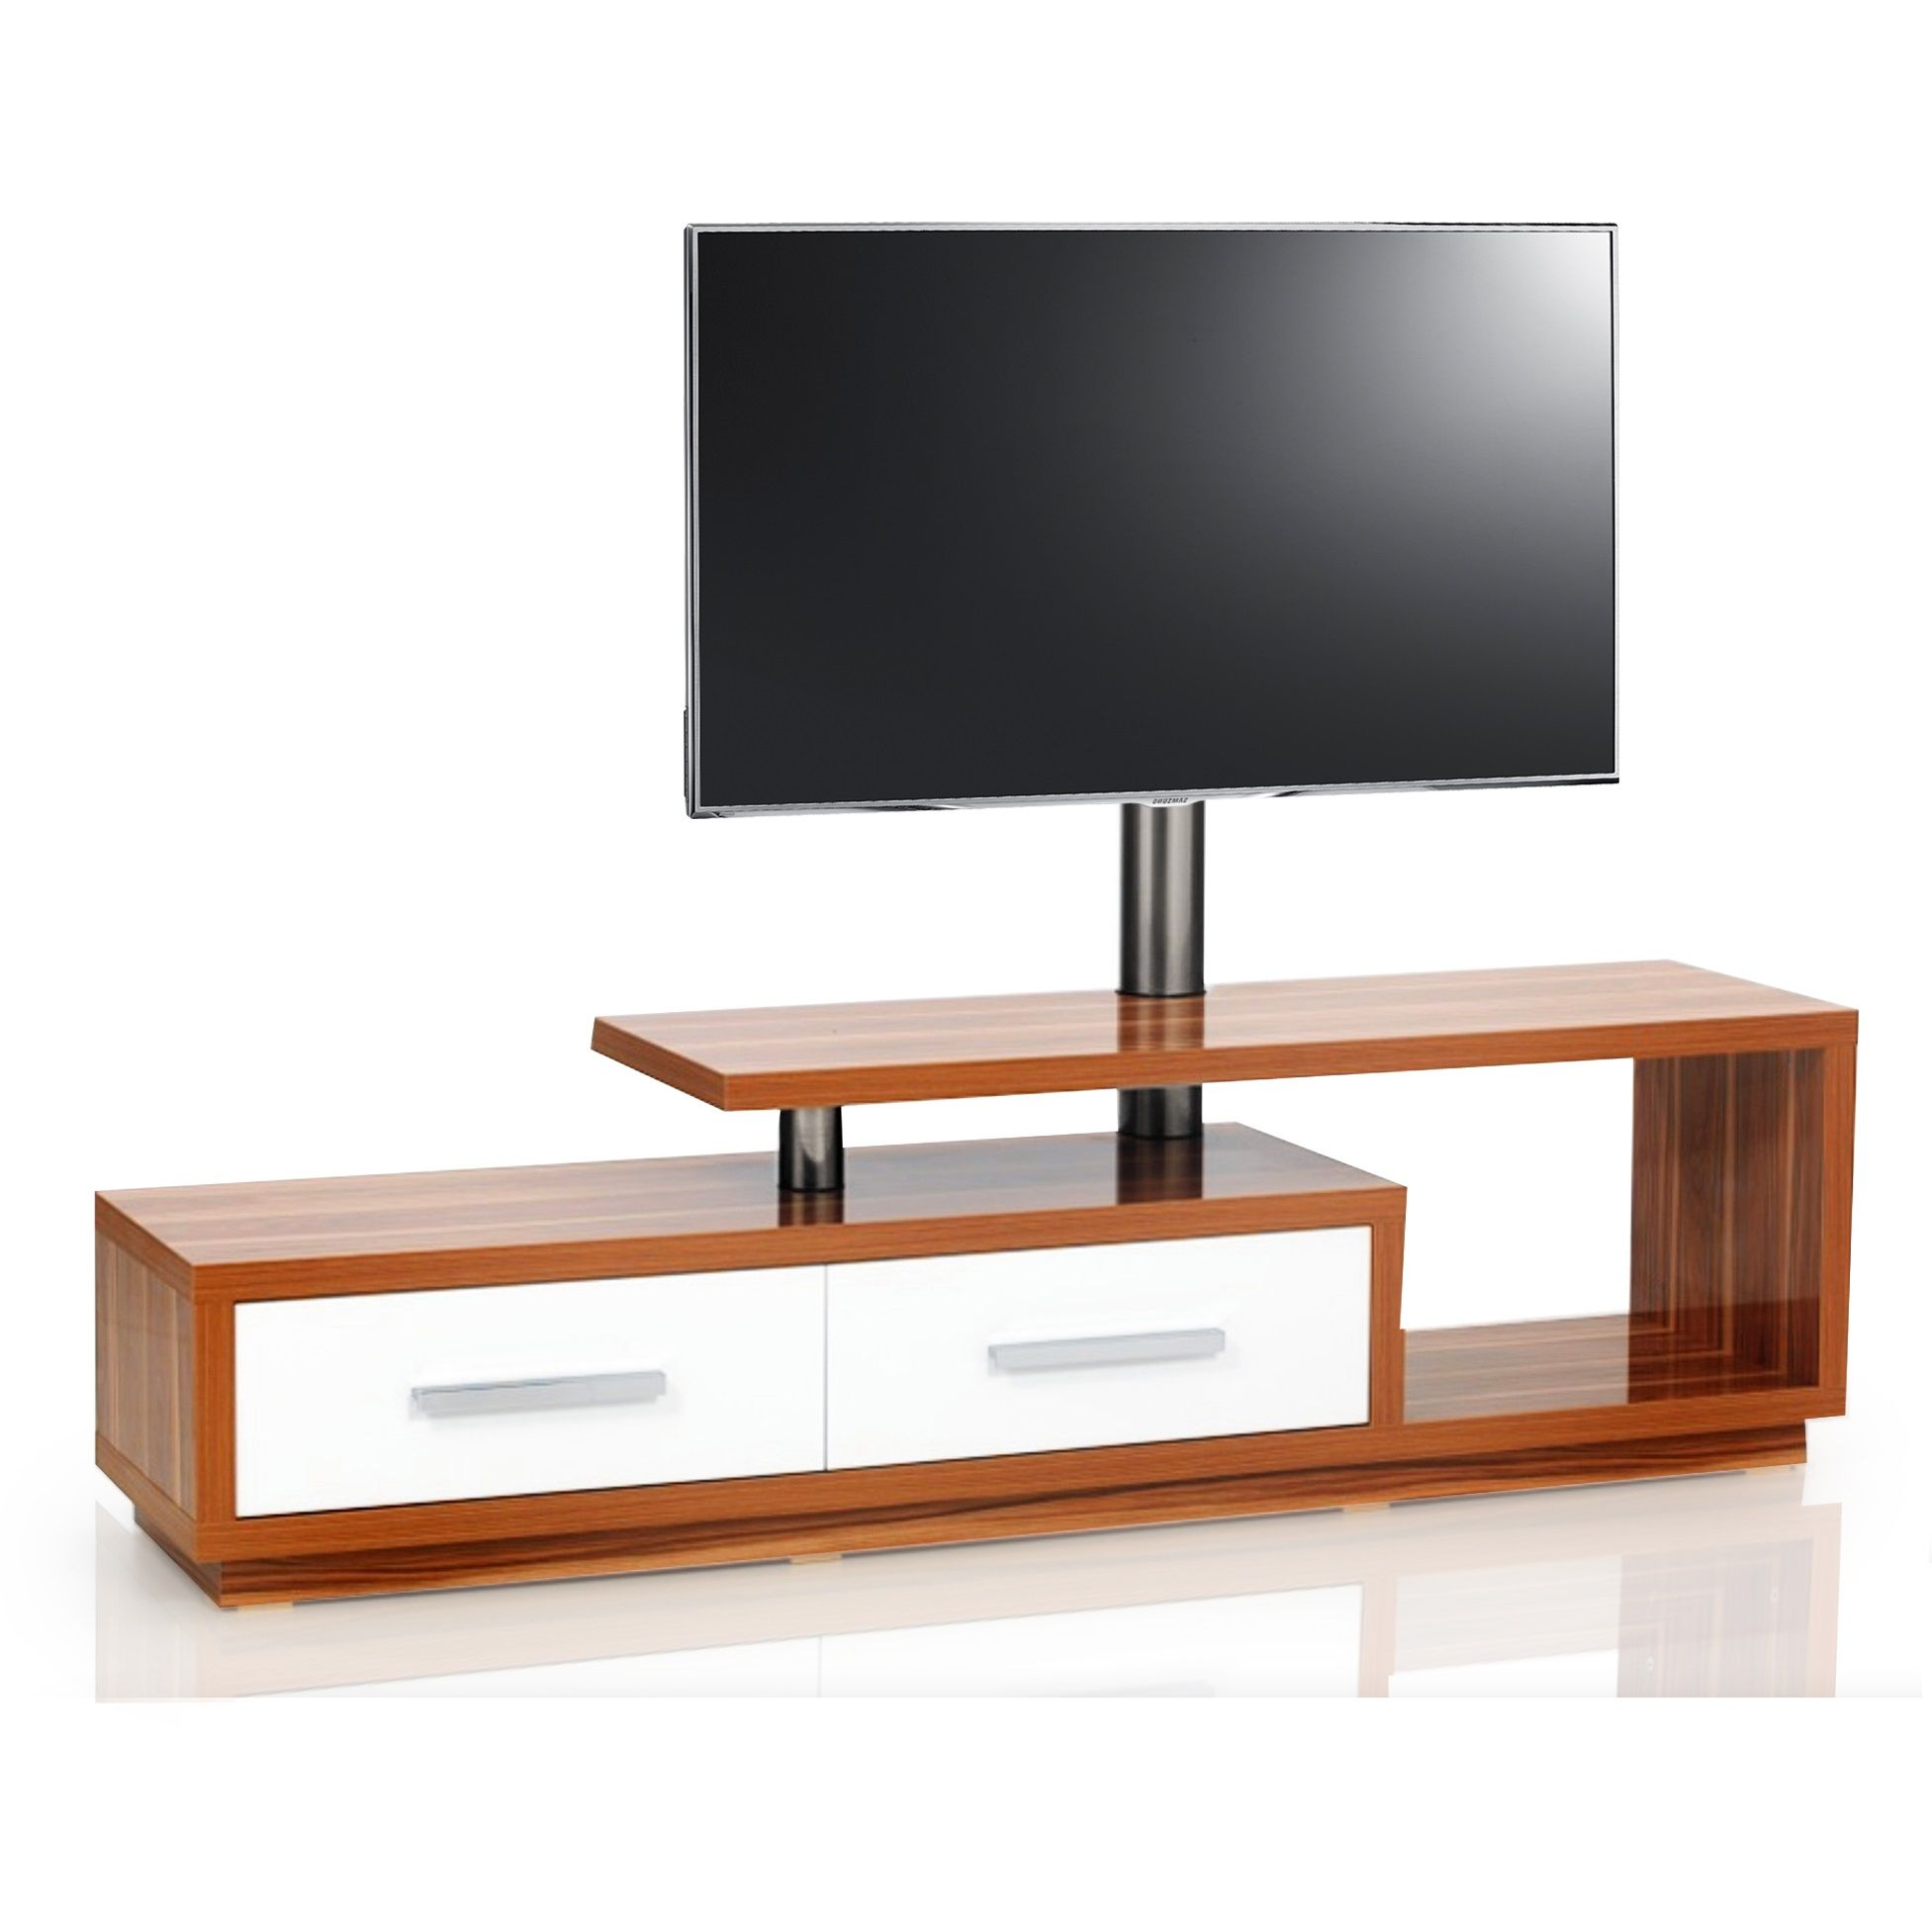 Model Table Tele - Stunning Tables De Television Contemporary Joshkrajcik Us [mjhdah]https://img2.cgtrader.com/items/40944/64199bf80a/tv-table-3d-model-low-poly-obj-fbx-blend-dae.png